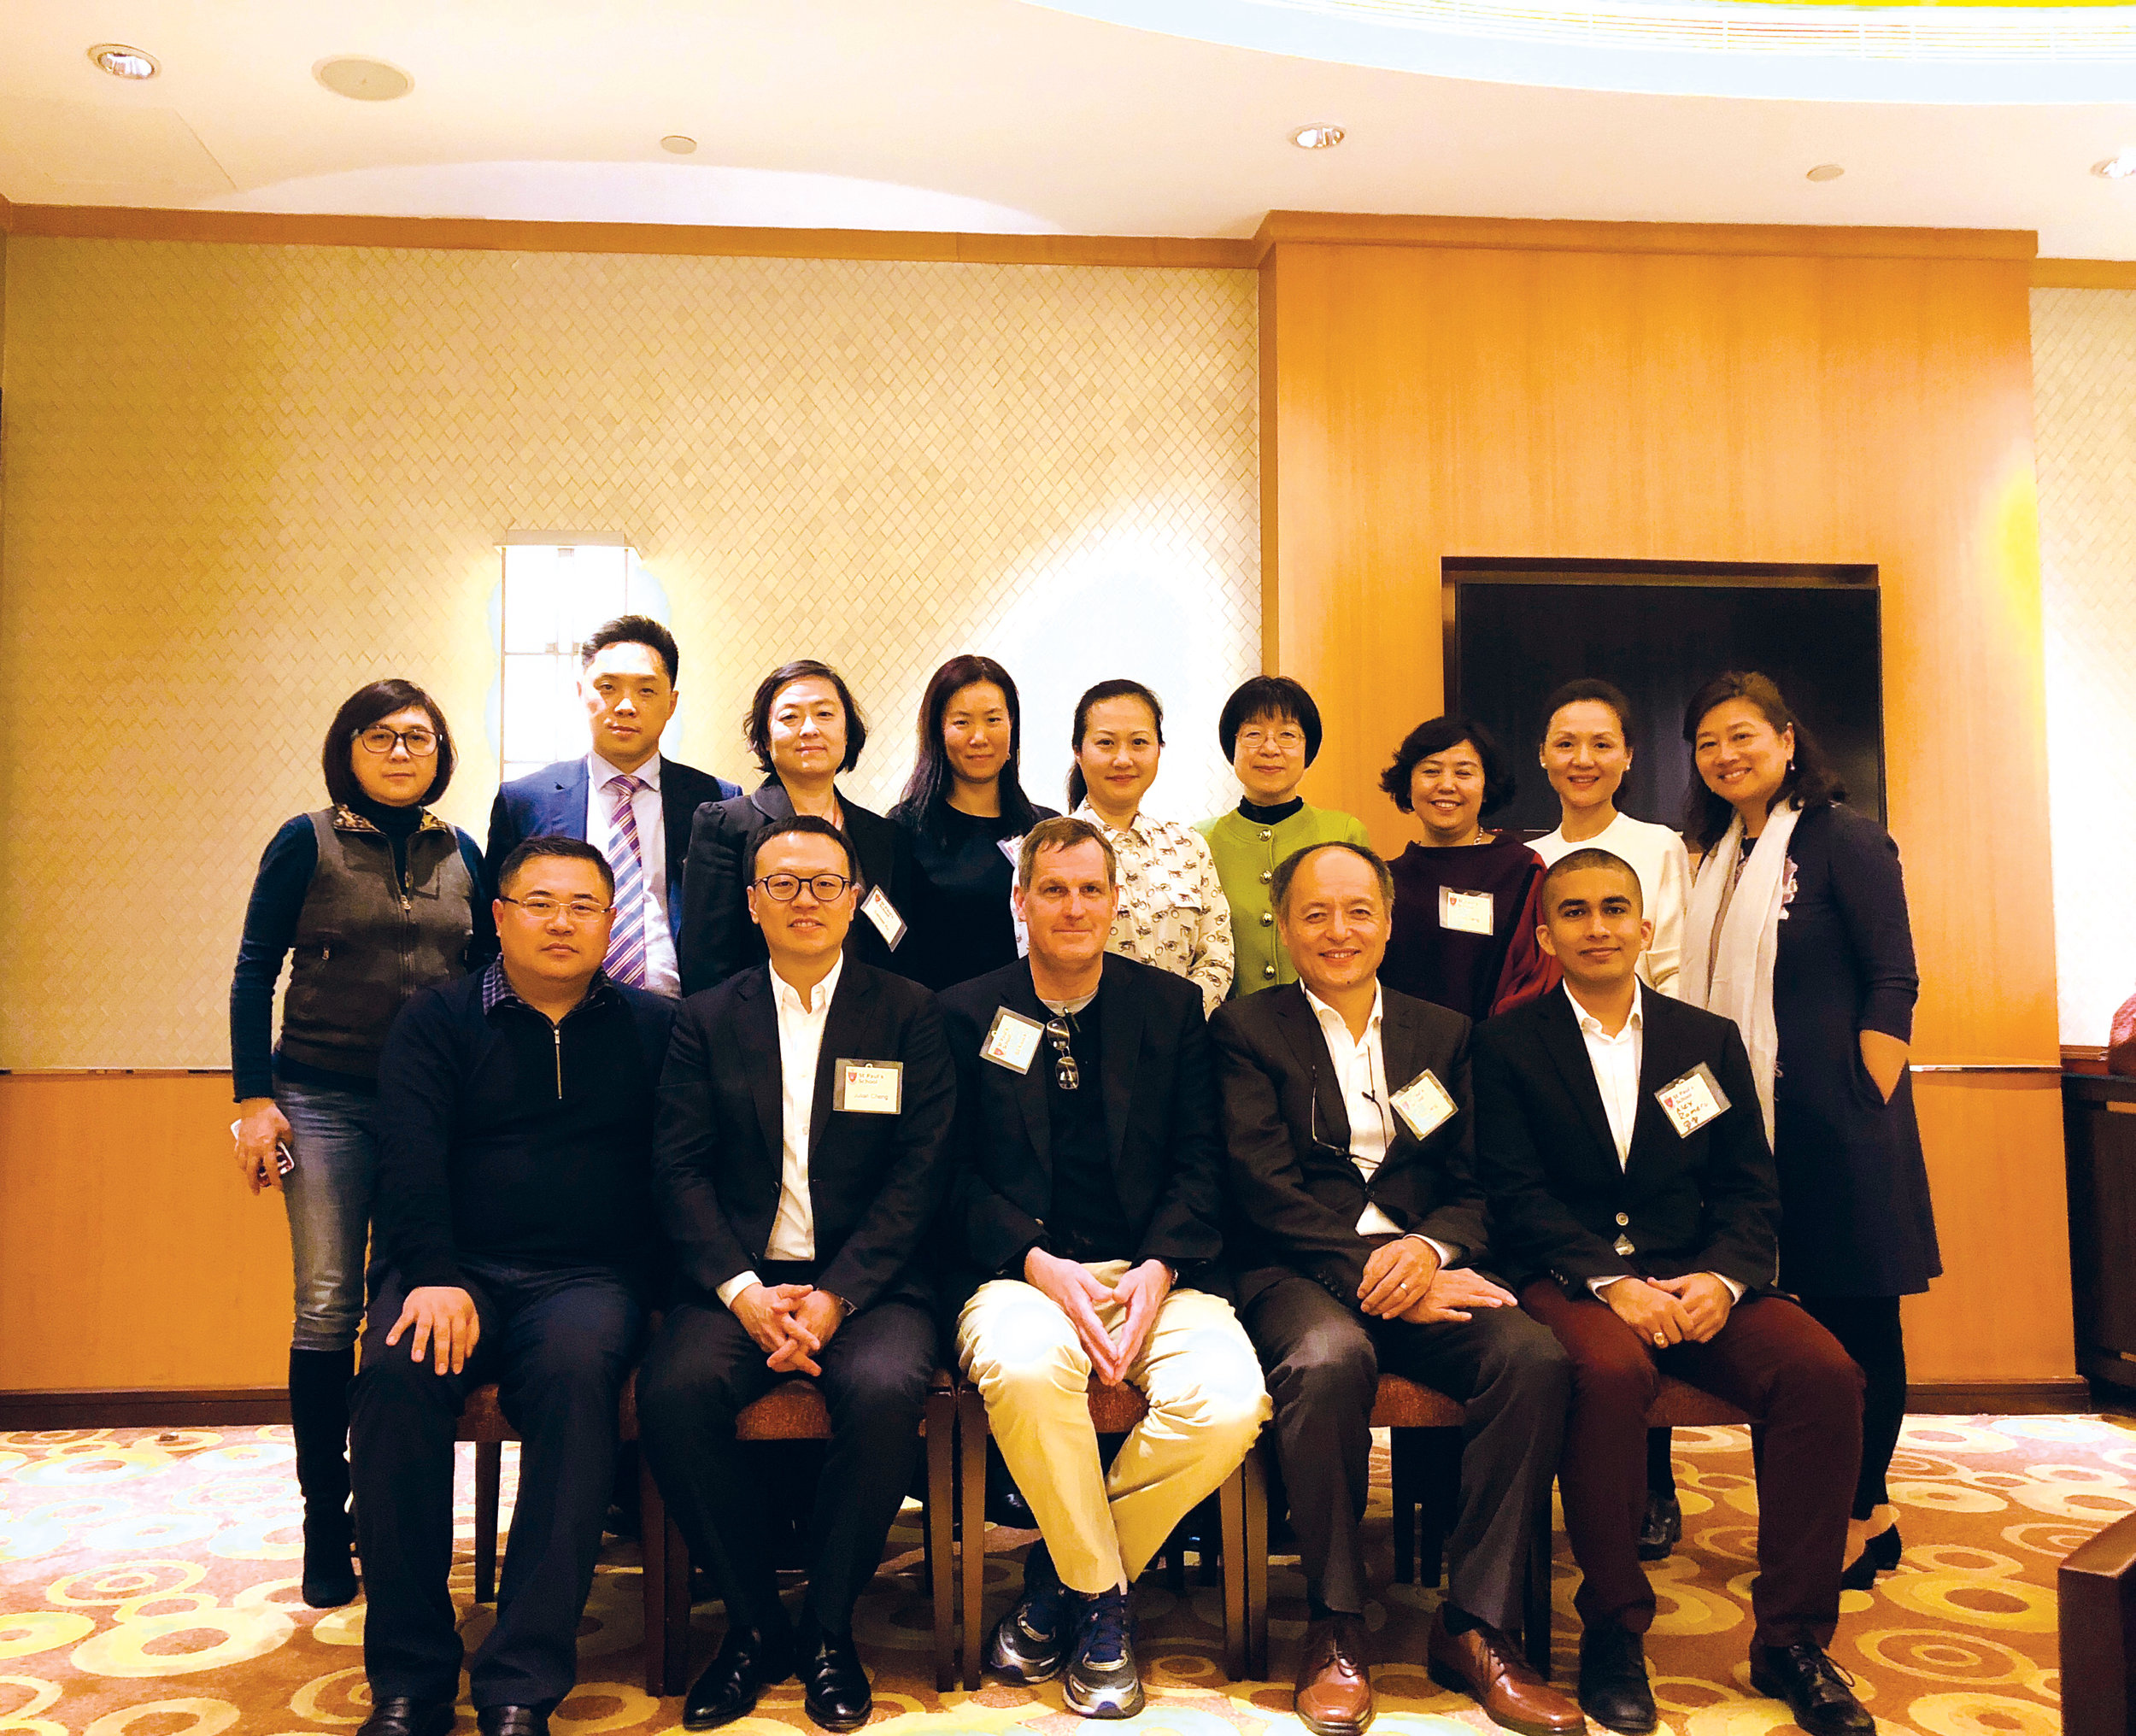 Julian Cheng '92 helped kick off the SPS Asia tour by hosting an alumni and parent reception on March 5, 2018, at the Beijing Hong Kong Jockey Club.